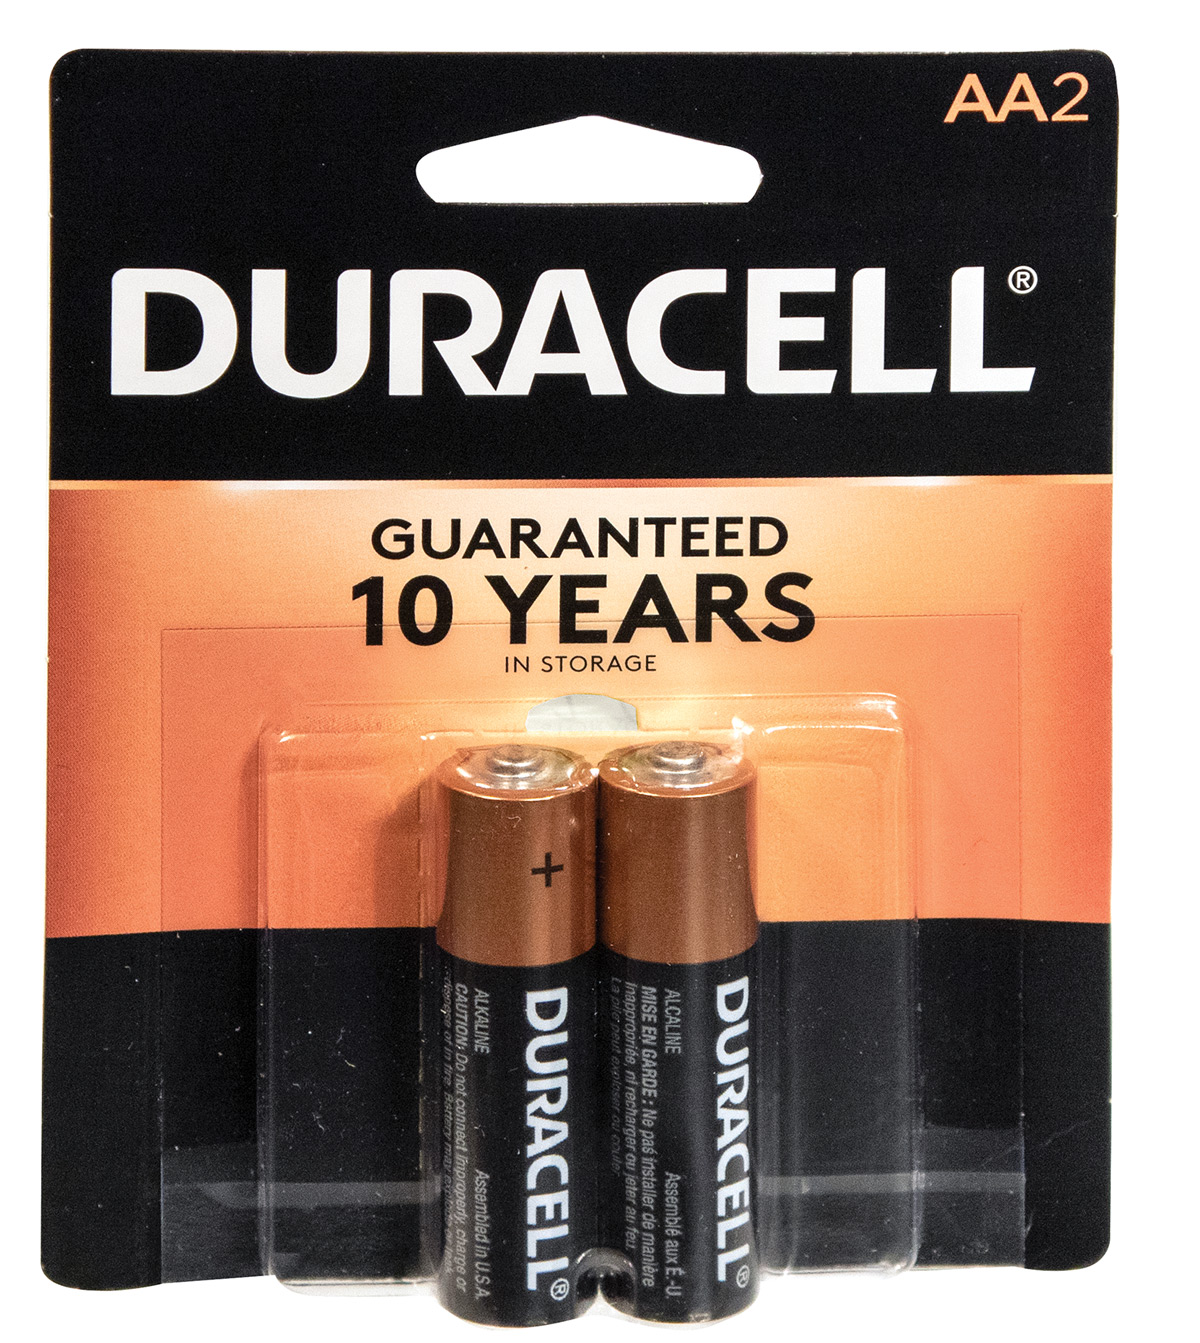 Duracell AA Batteries -2 per pack